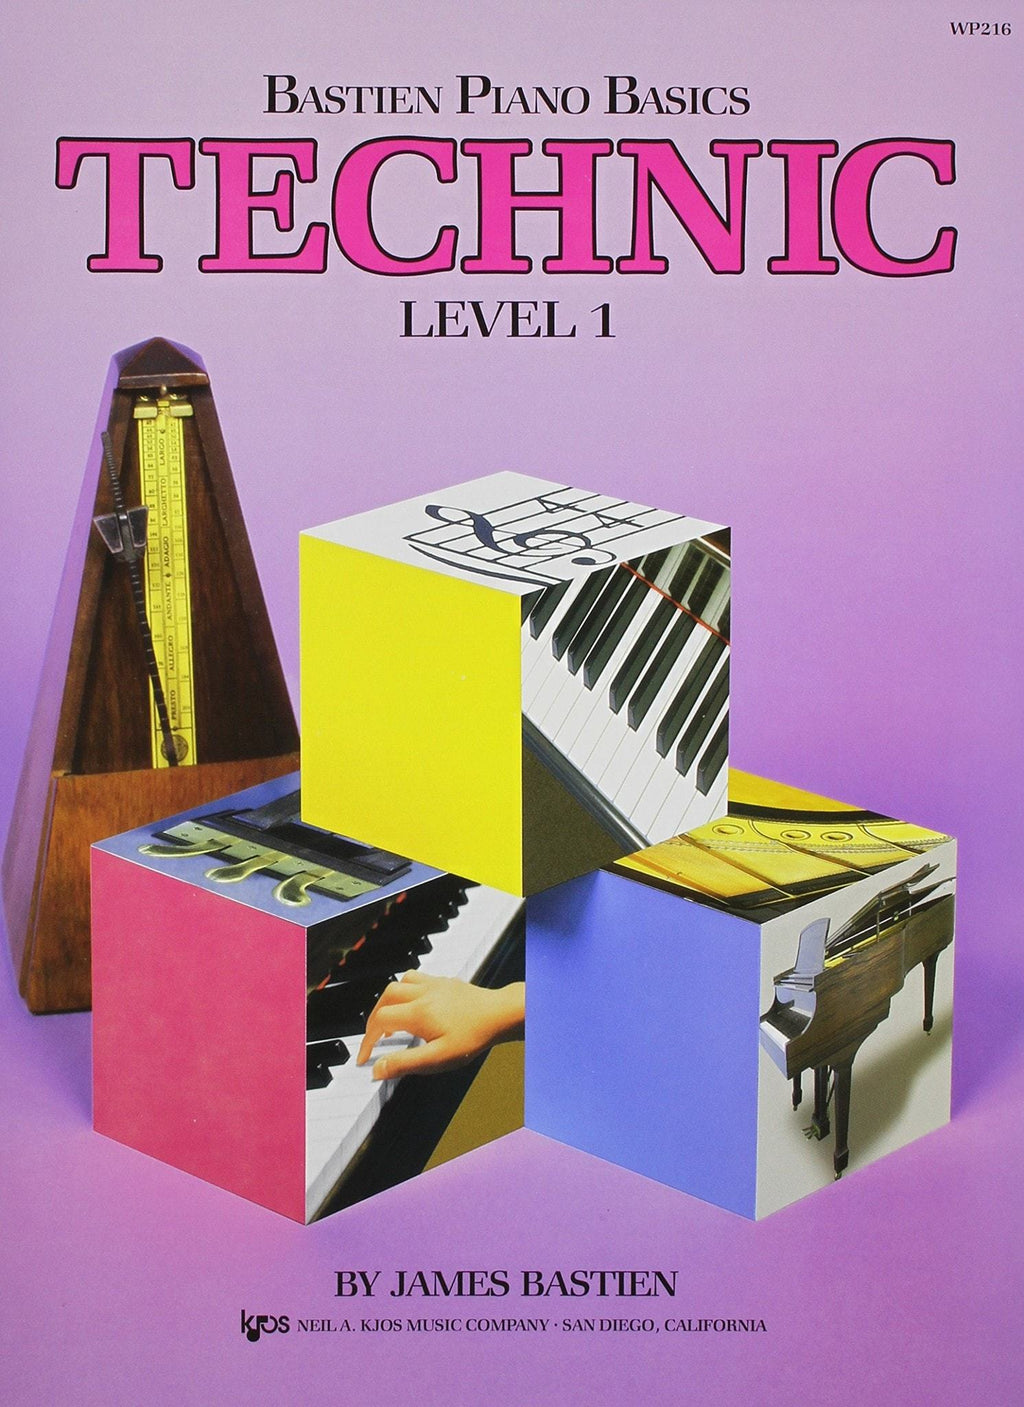 Bastien Piano BasicsTechnique - Level 1 - bastien piano basics technic 1